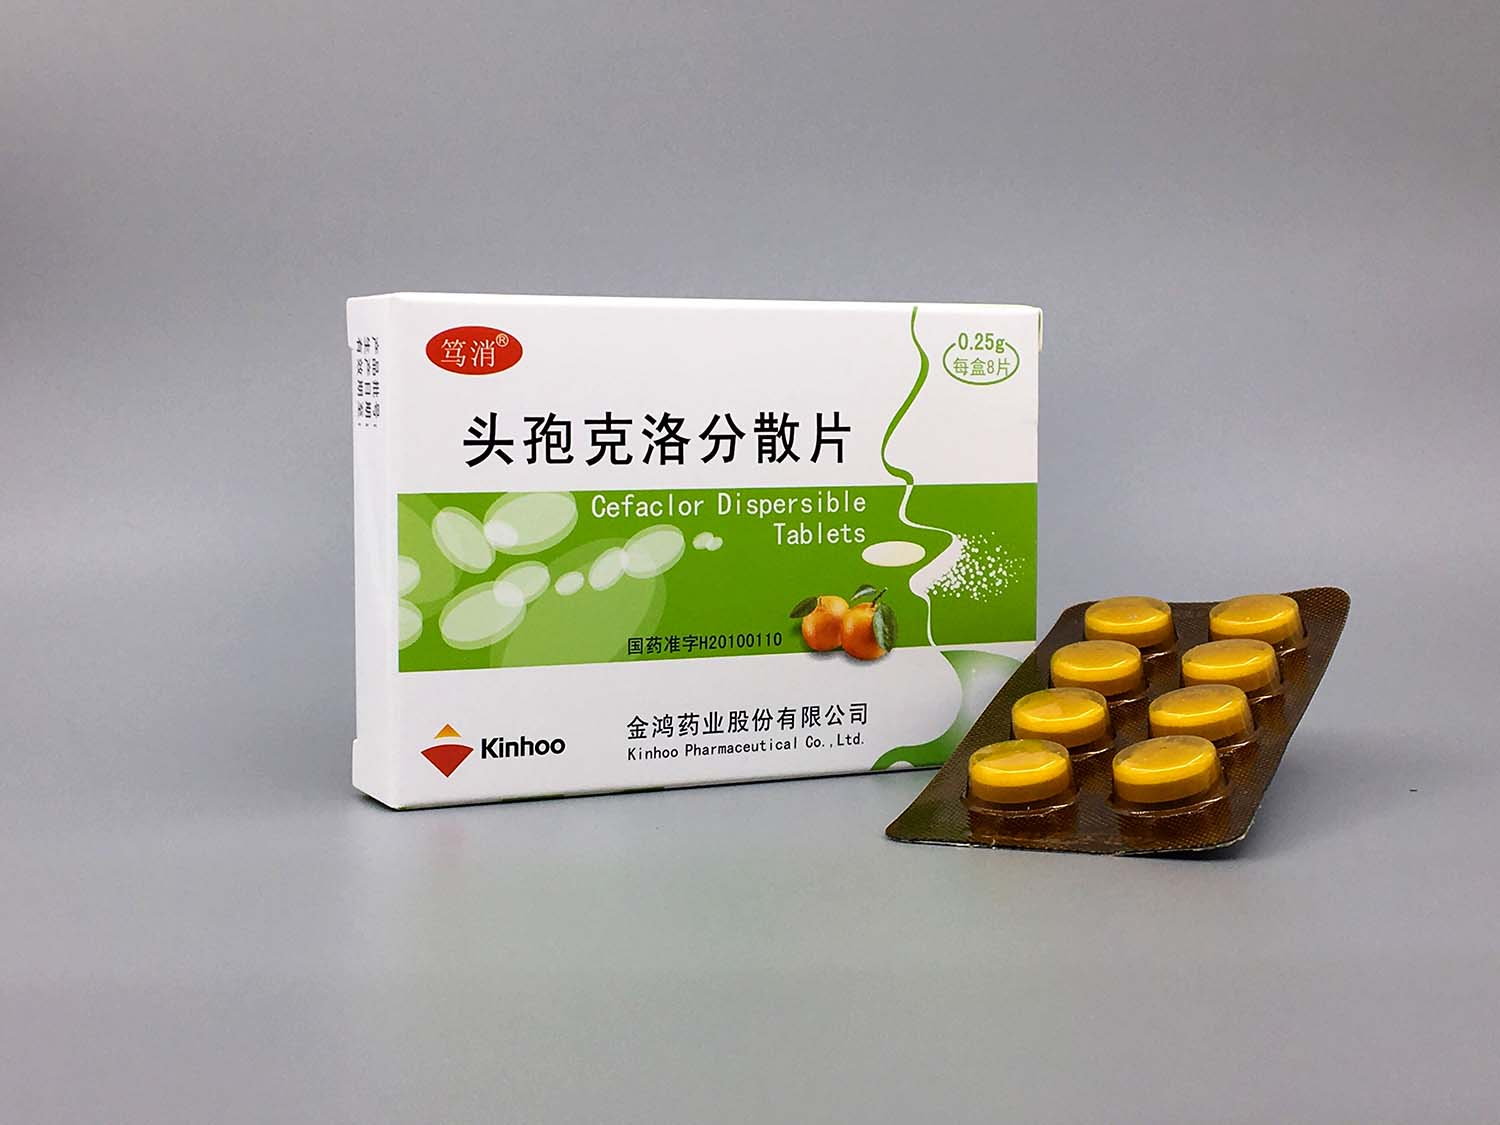 Cefaclor Dispersible Tablets